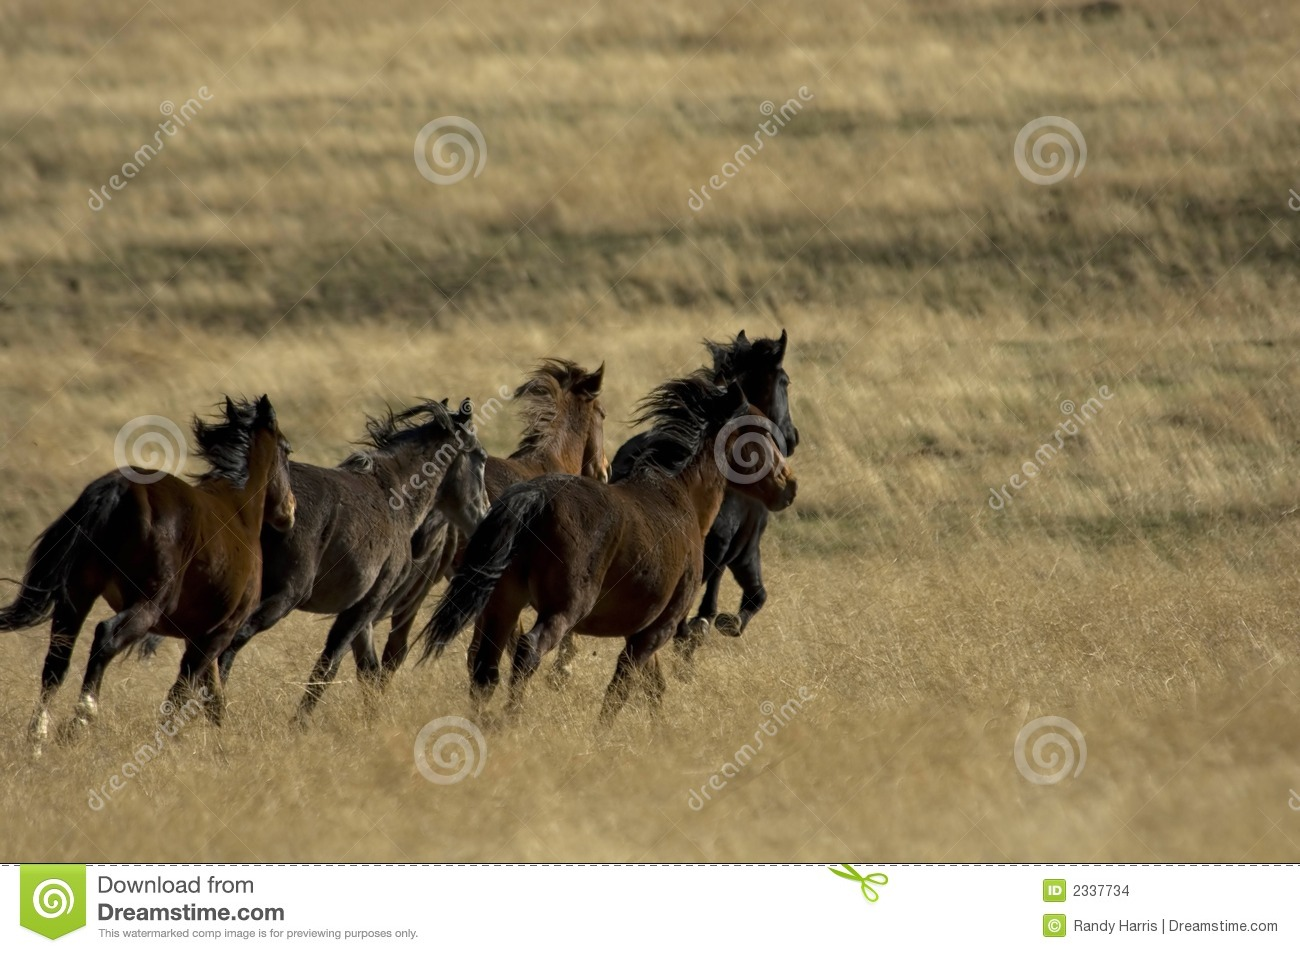 wild horse hispanic single women See a rich collection of stock images, vectors, or photos for horse sketch you can buy on shutterstock explore quality images, photos, art & more.